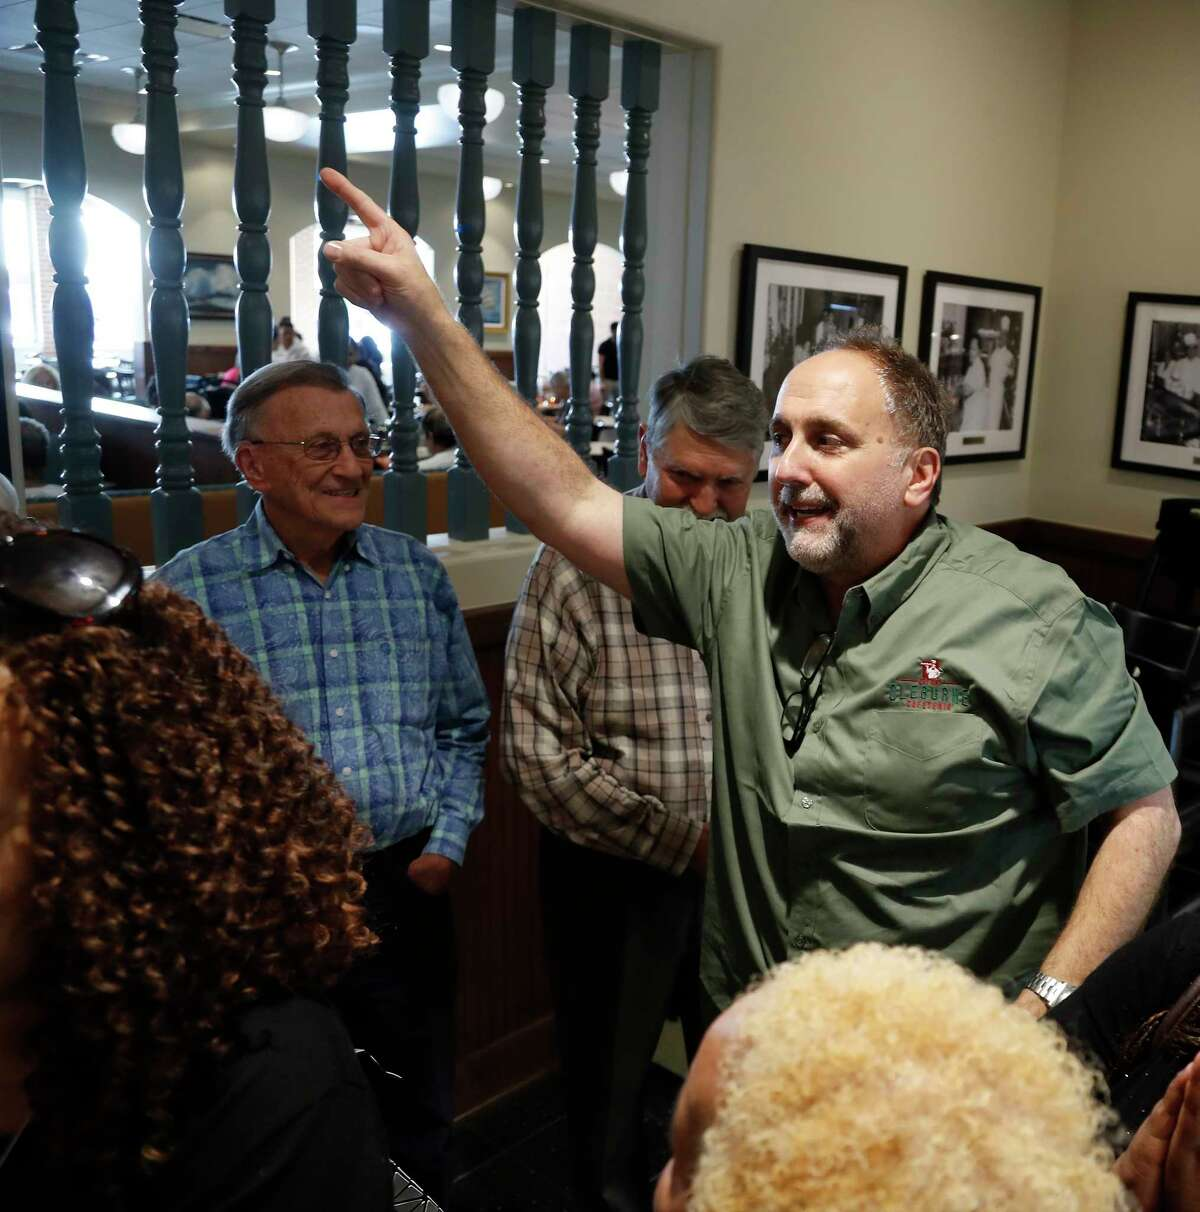 Cleburne Cafeteria owner George Mickelis greets customers standing in line during their soft opening, Tuesday, Nov. 14, 2017, in Houston. Cleburne Cafeteria, which was destroyed by fire in 2016, now features several upgrades including a patio, the ability to order wine and beer and some menu additions. ( Karen Warren / Houston Chronicle )